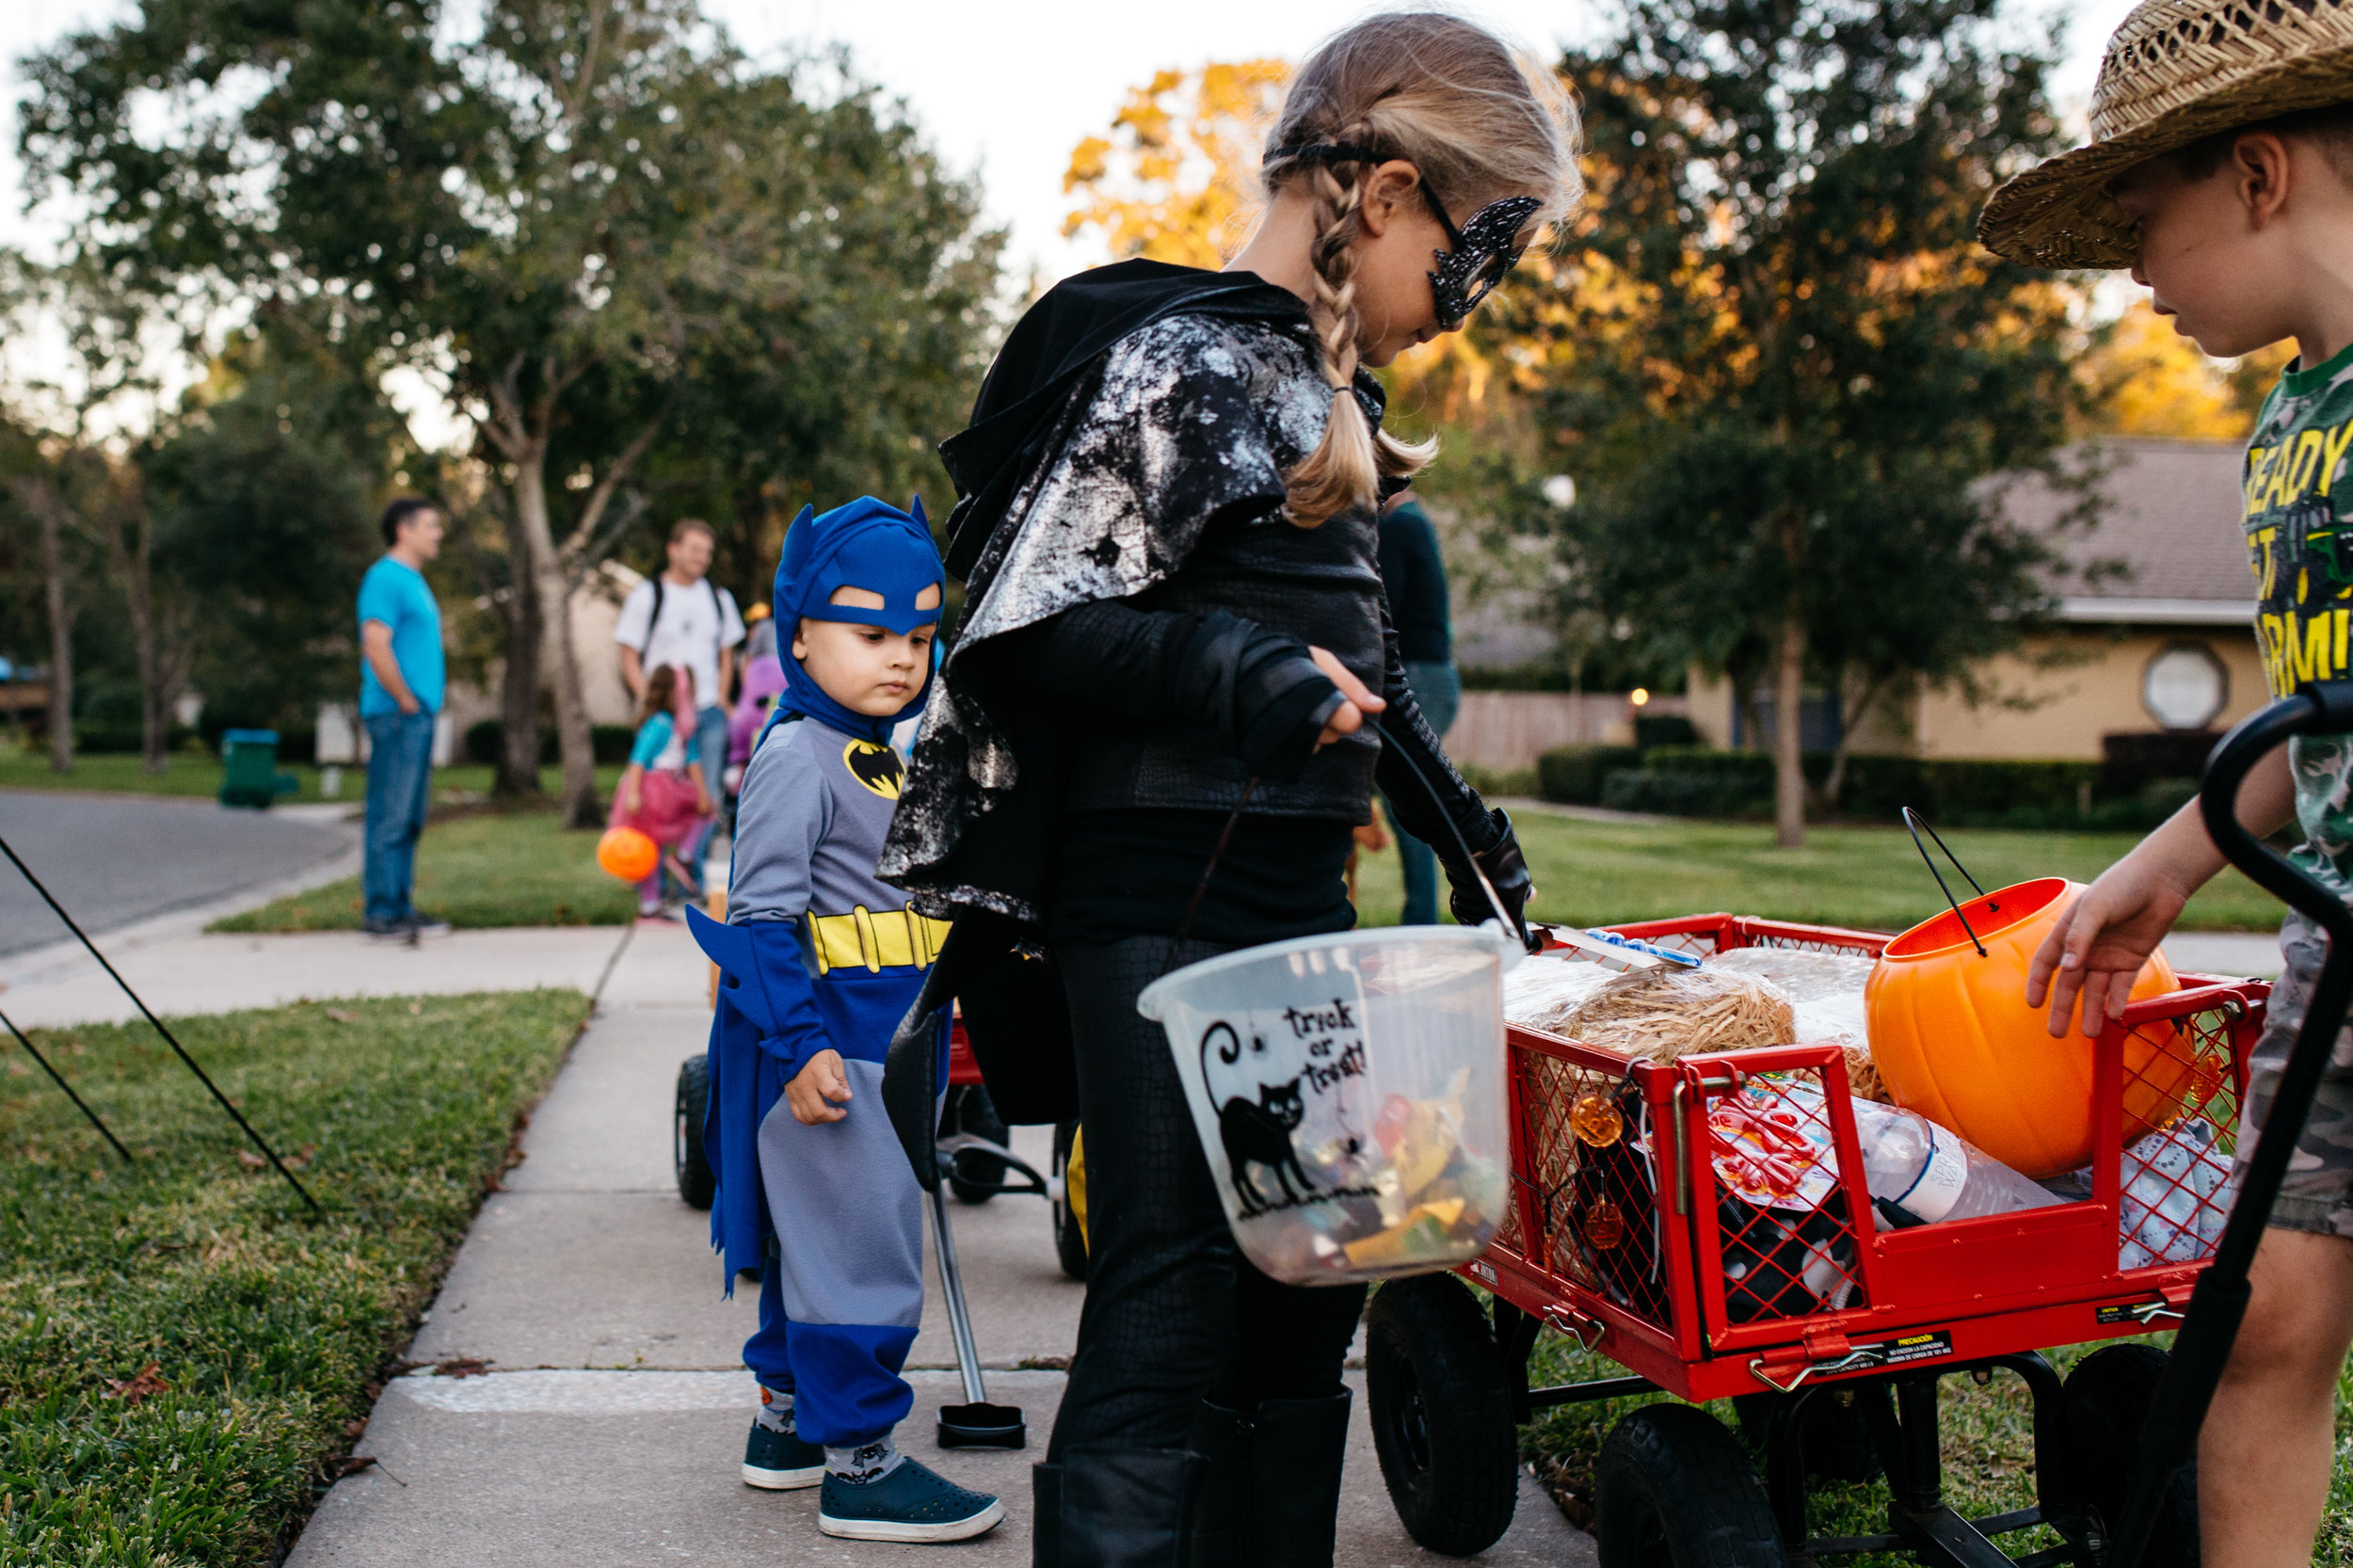 Batman Trick or Treating In Orlando Family Photojournalism.jpg